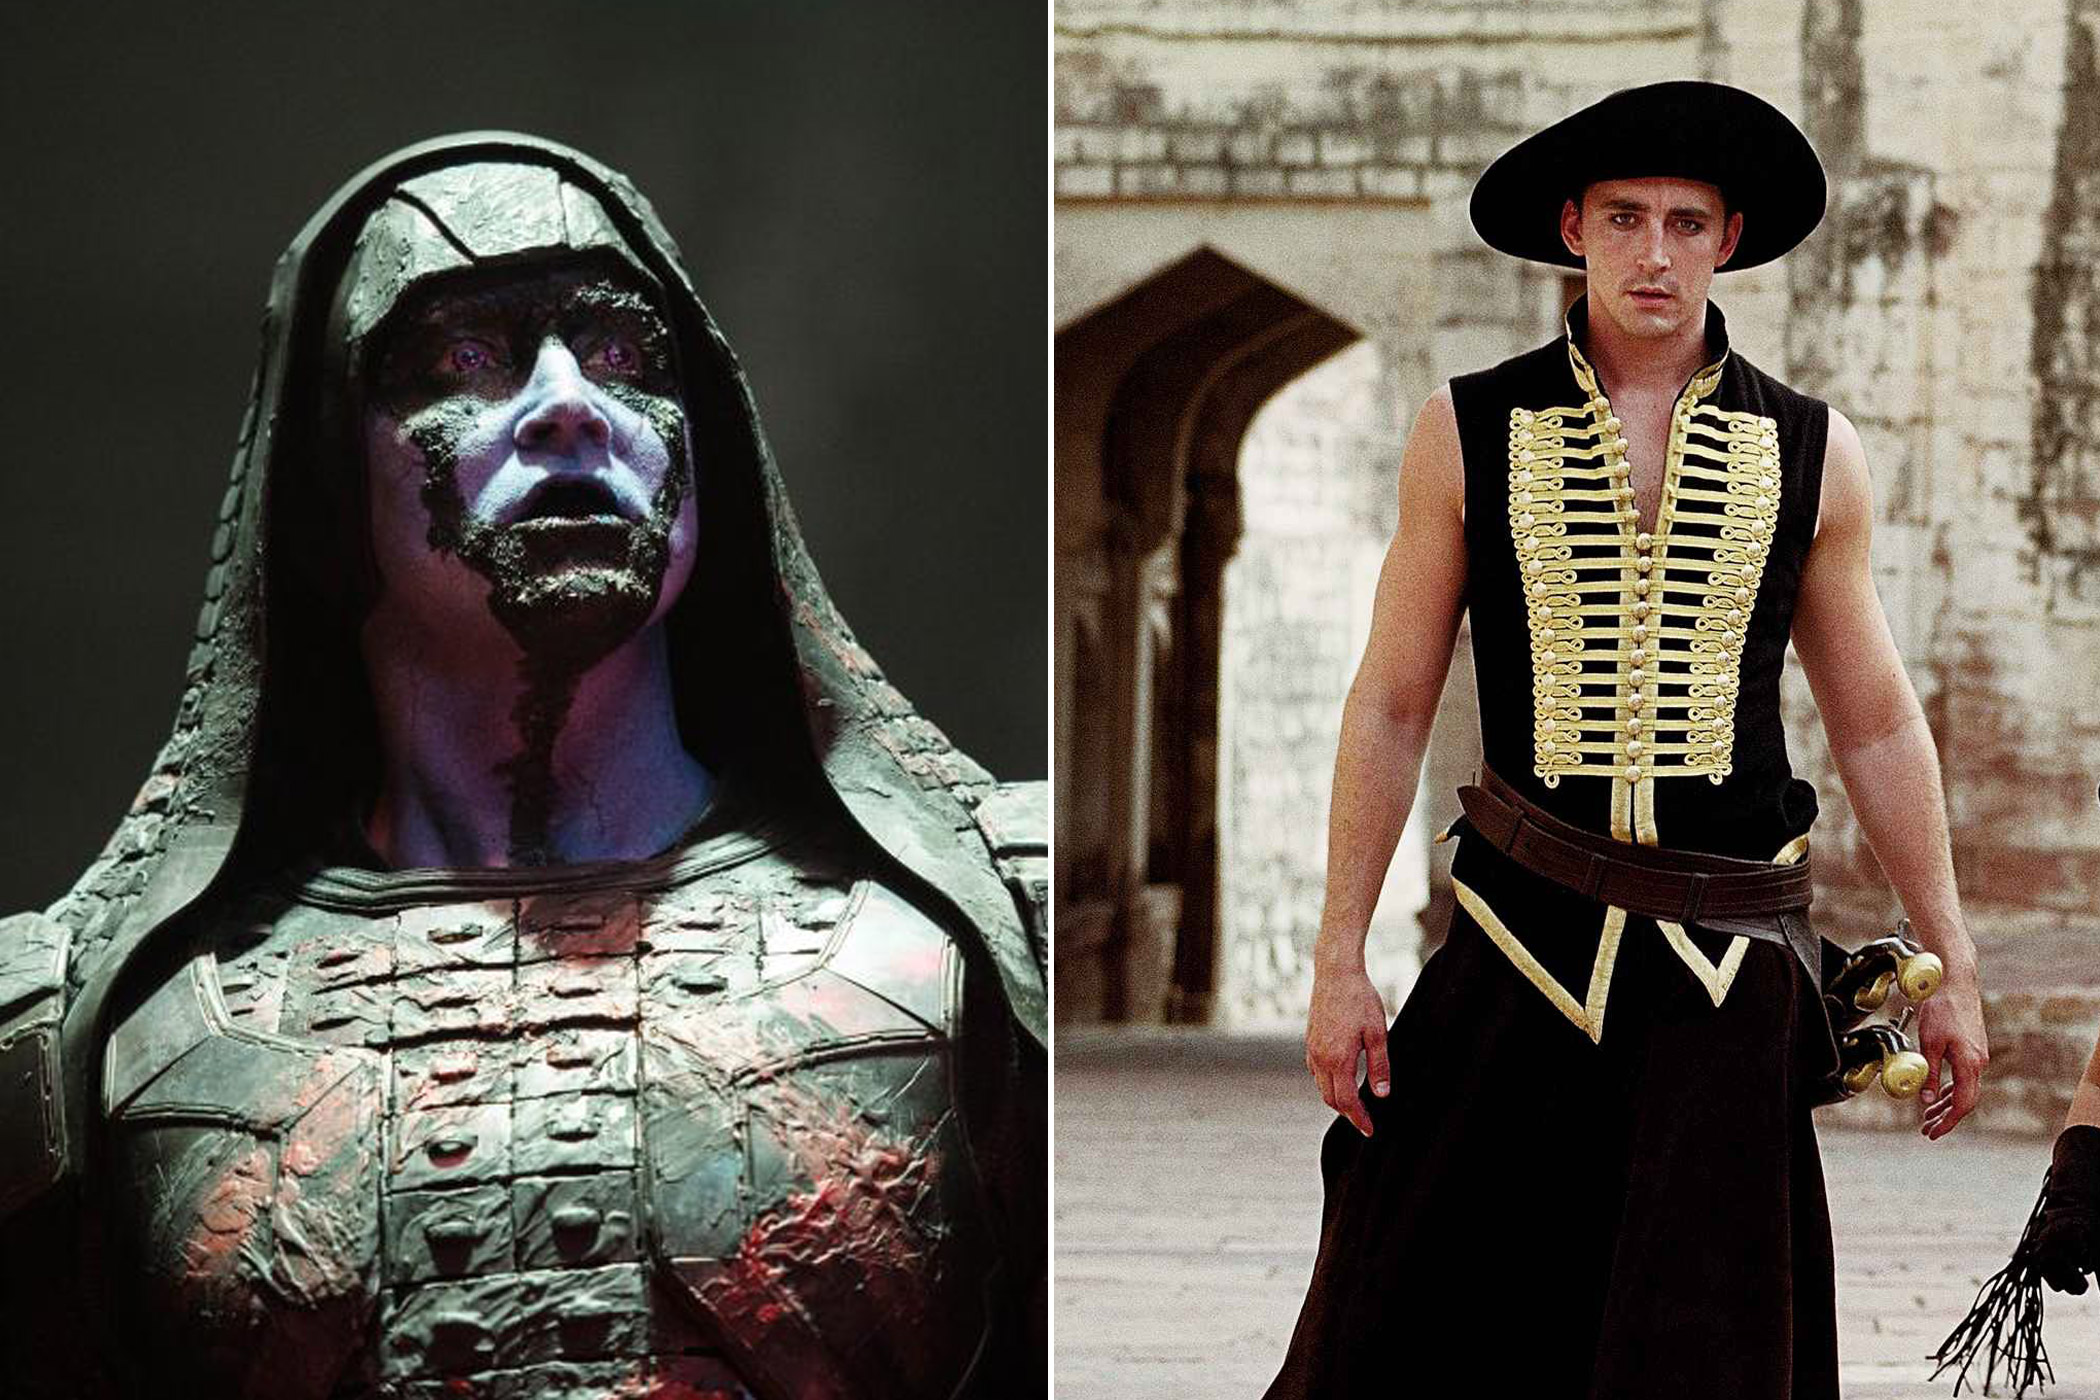 Lee Pace as Ronan the Accuser in <i>Guardians of the Galaxy</i> and Roy Walker/The Black Bandit in <i>The Fall</i>